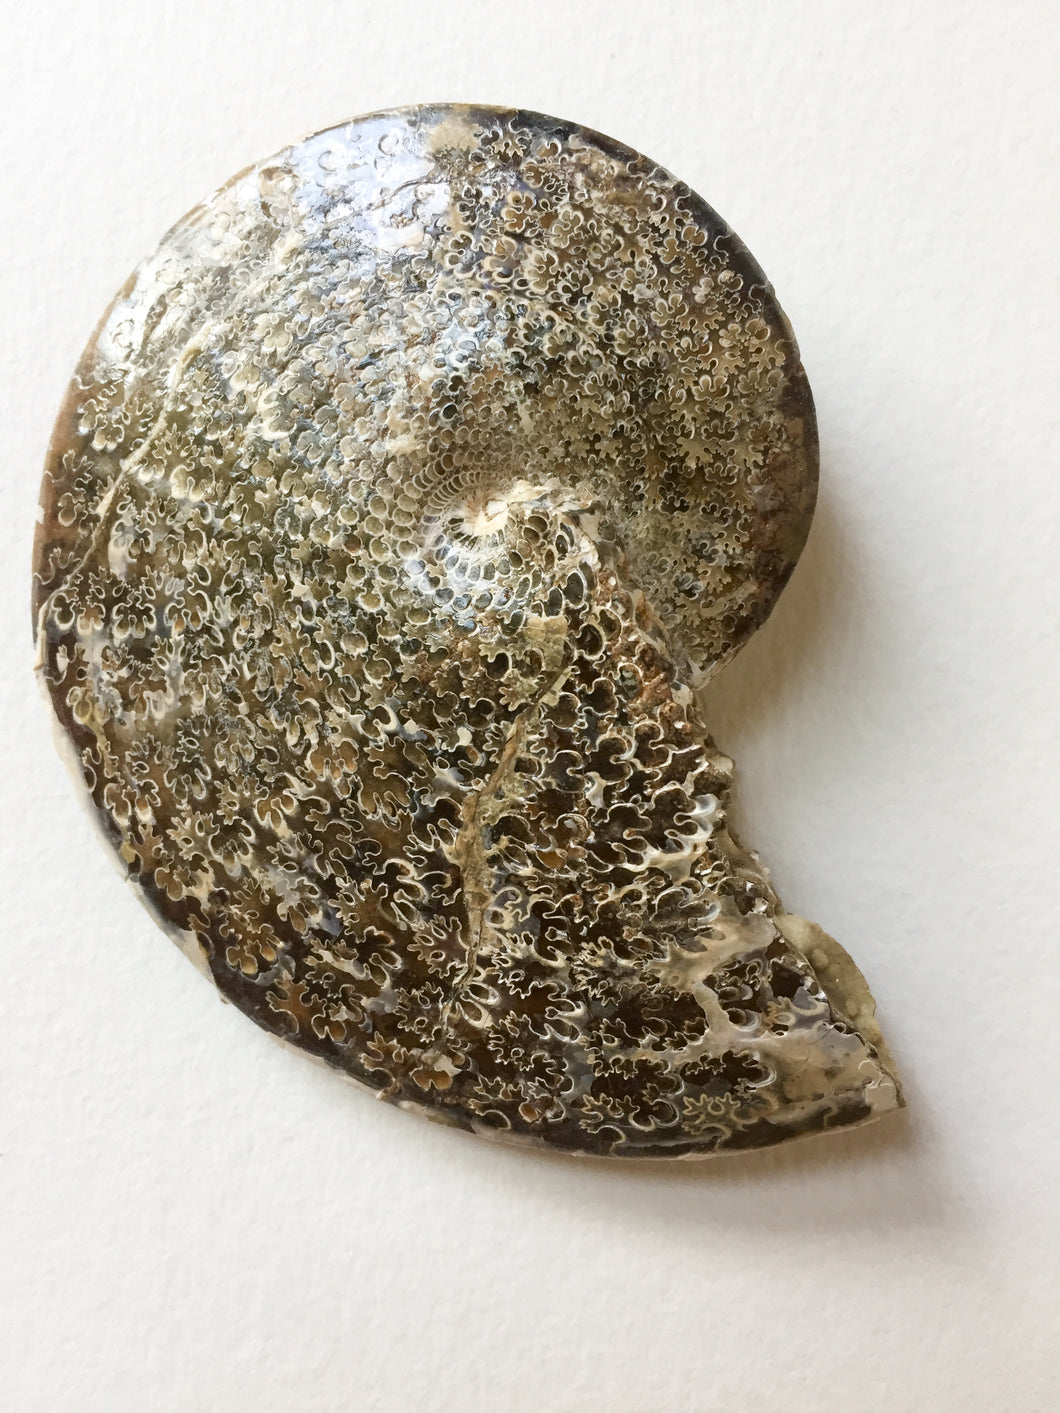 Sphenodiscus sp ammonite